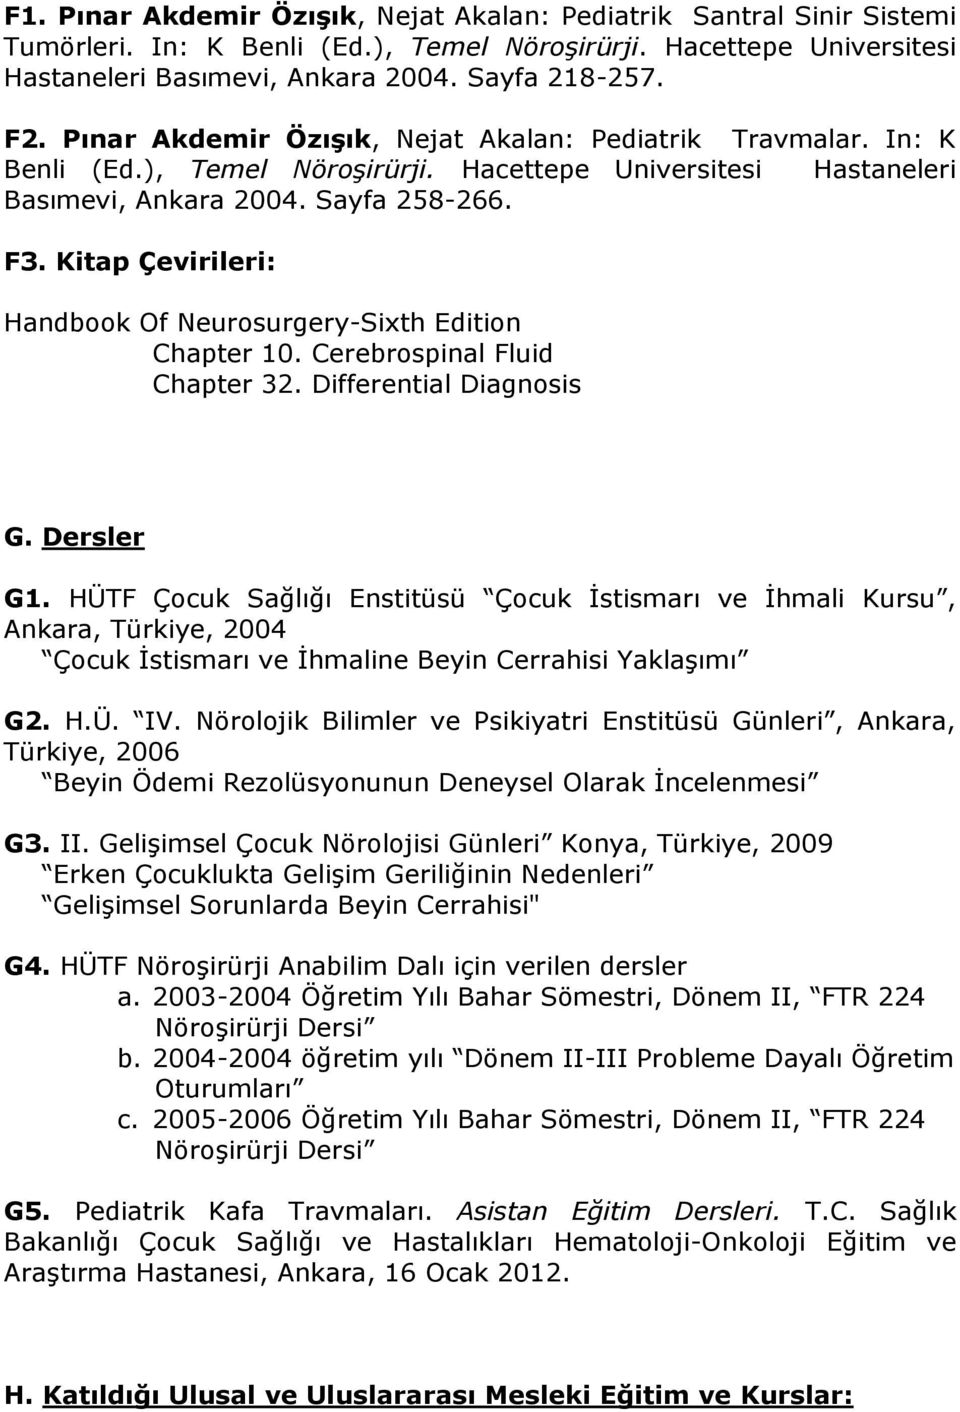 Kitap Çevirileri: Handbook Of Neurosurgery-Sixth Edition Chapter 10. Cerebrospinal Fluid Chapter 32. Differential Diagnosis G. Dersler G1.